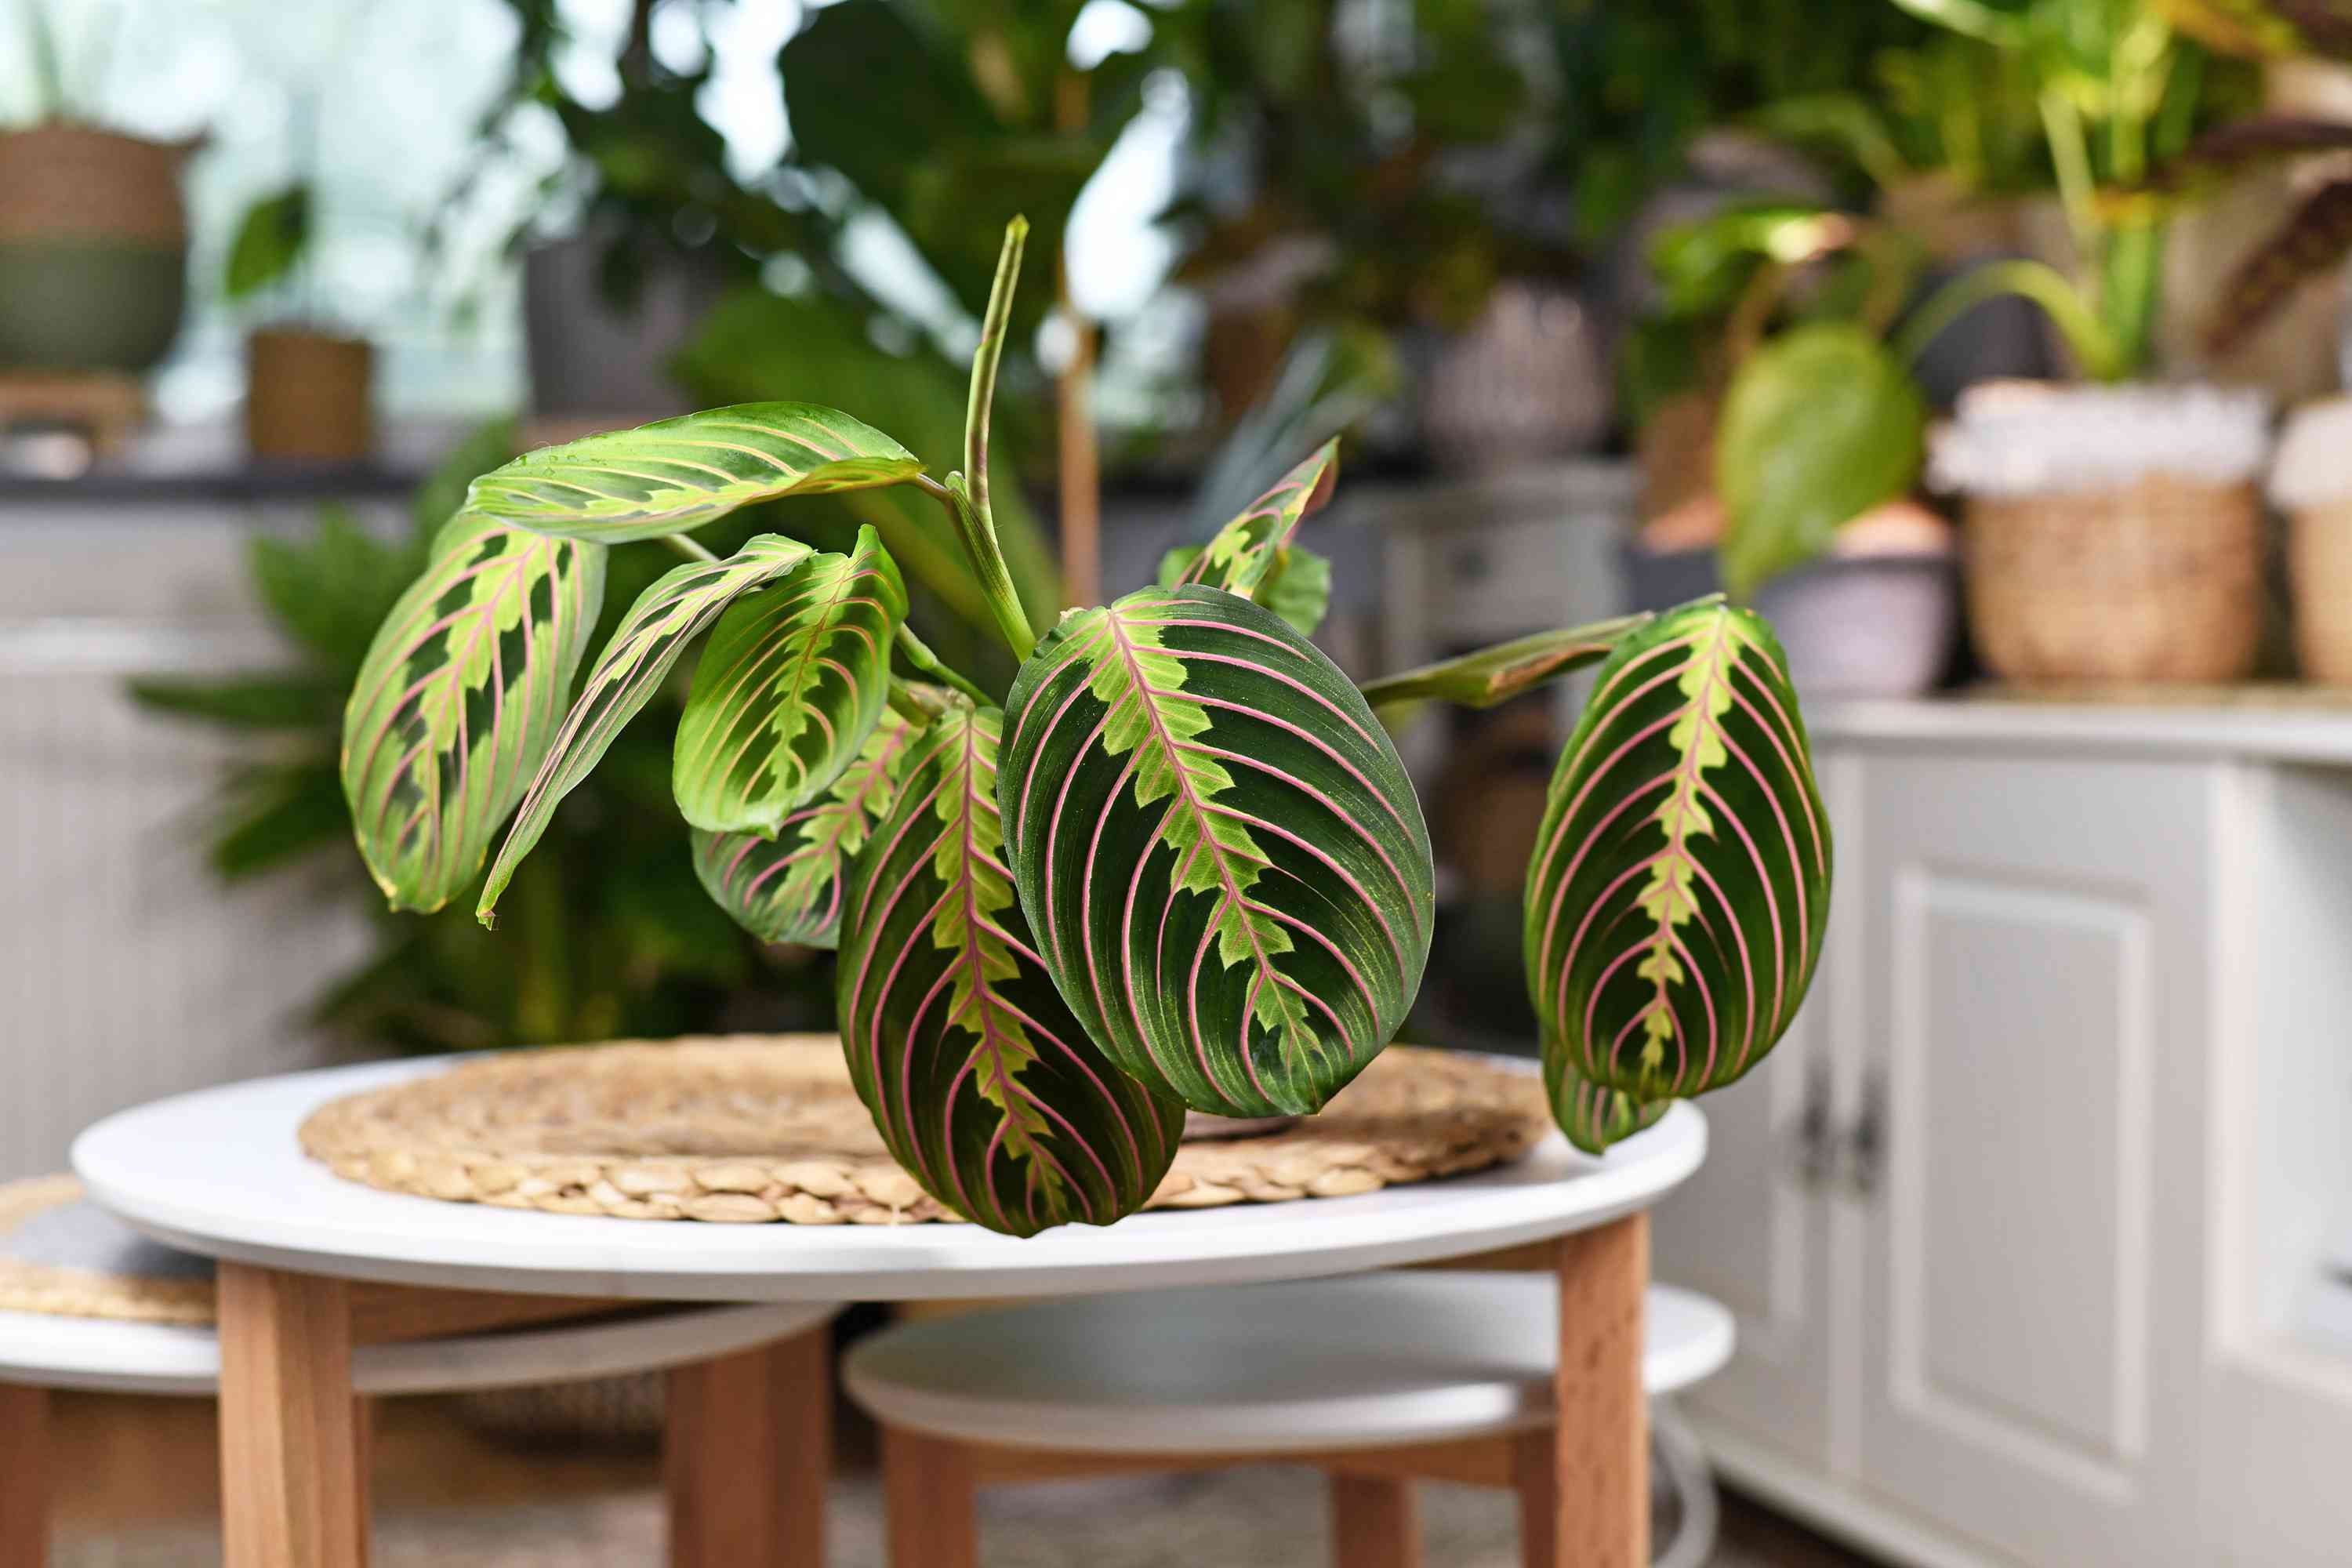 Tropical 'Maranta Leuconeura Fascinator' houseplant with leaves with exotic red stripe pattern on table